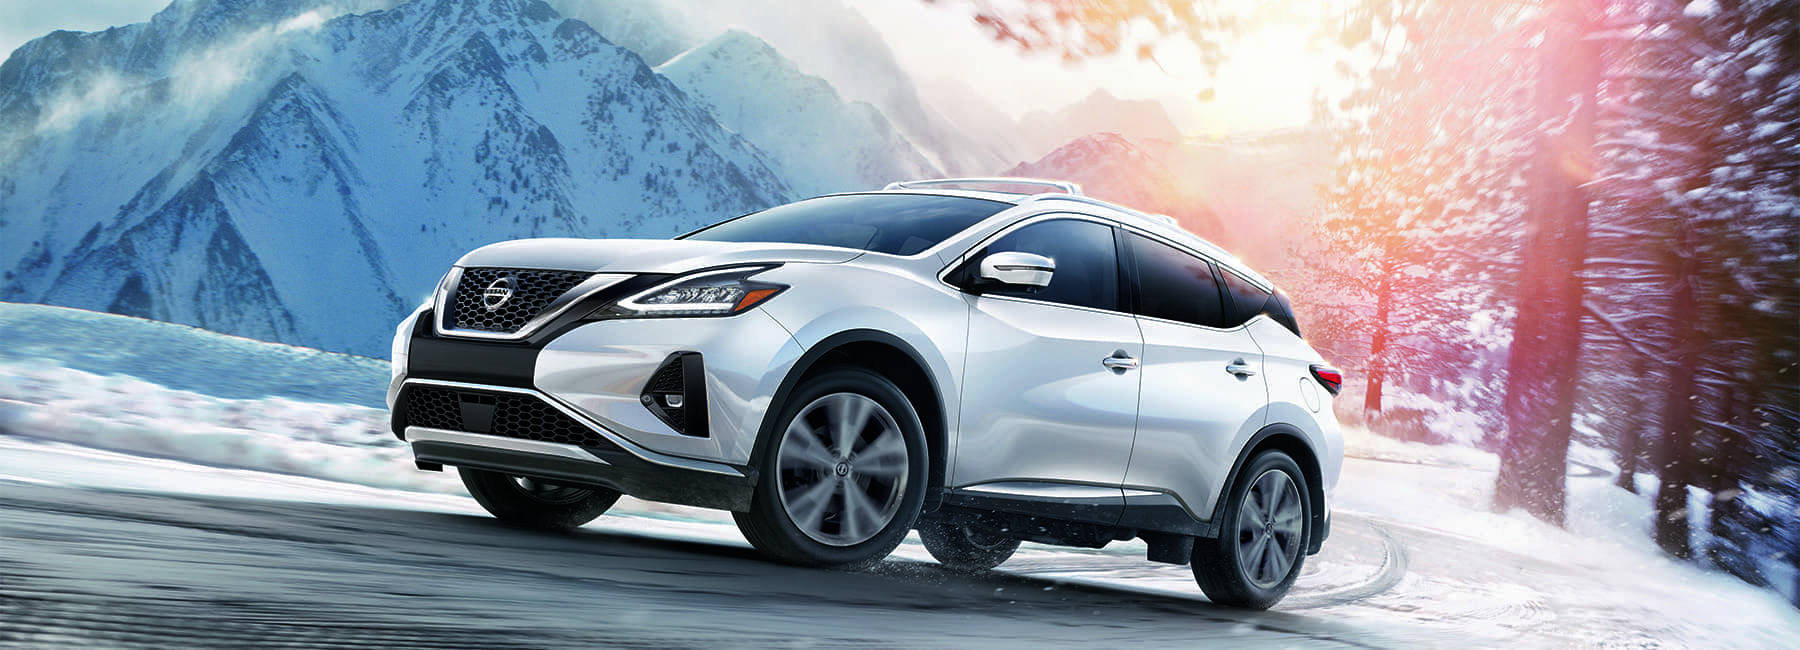 2020-nissan-murano-exterior-winter-mobile